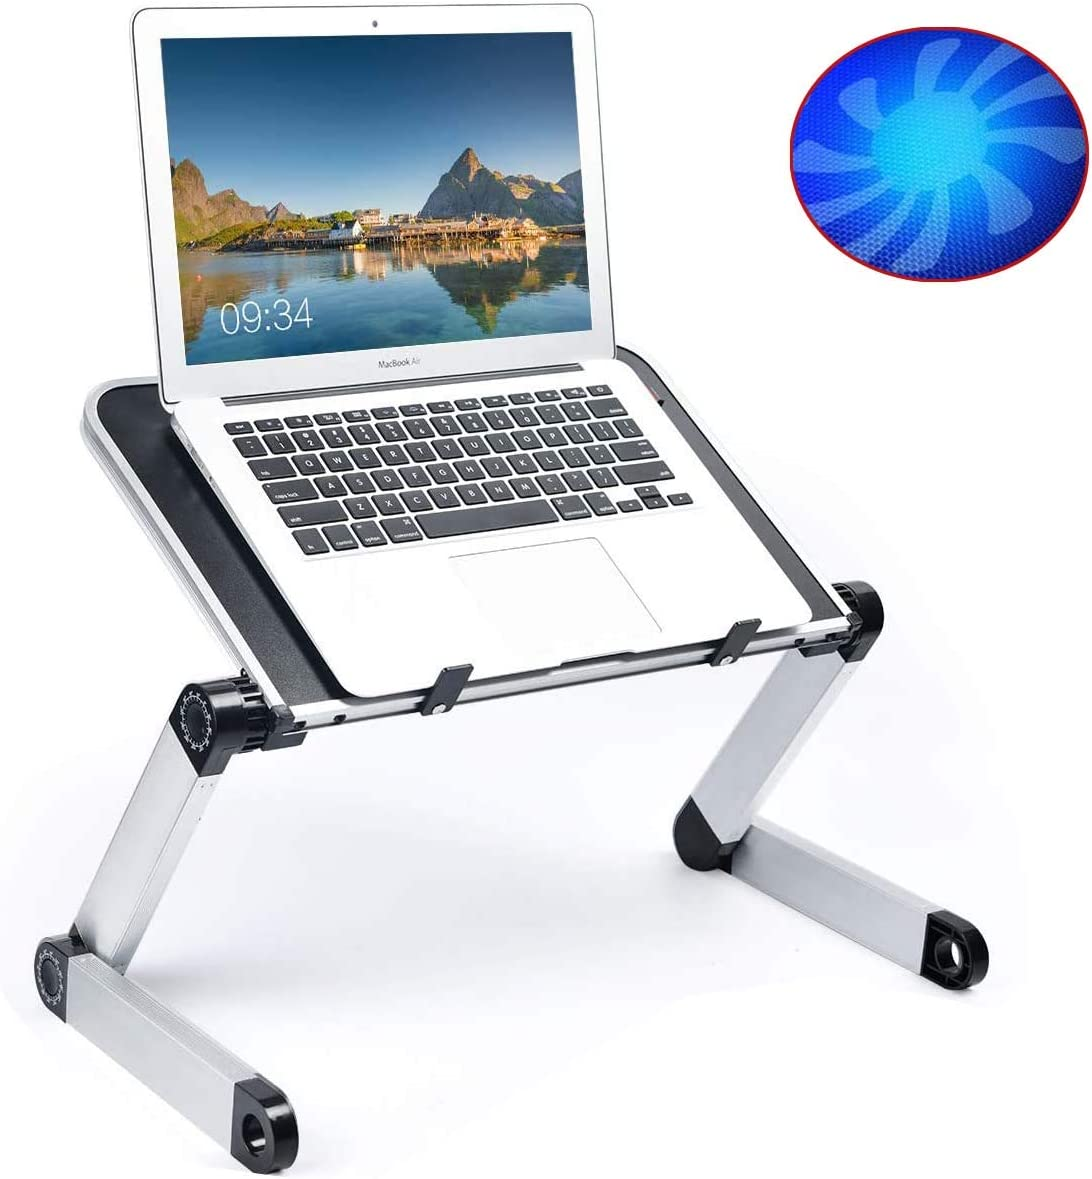 "Adjustable Laptop Stand Bed Desk 16"" Laptop Stand for Bed Couch Sofa Foldable Laptop Table Portable with Cooling & Fan Lightweight Portable Bed Sofa Couch Lap Tray"